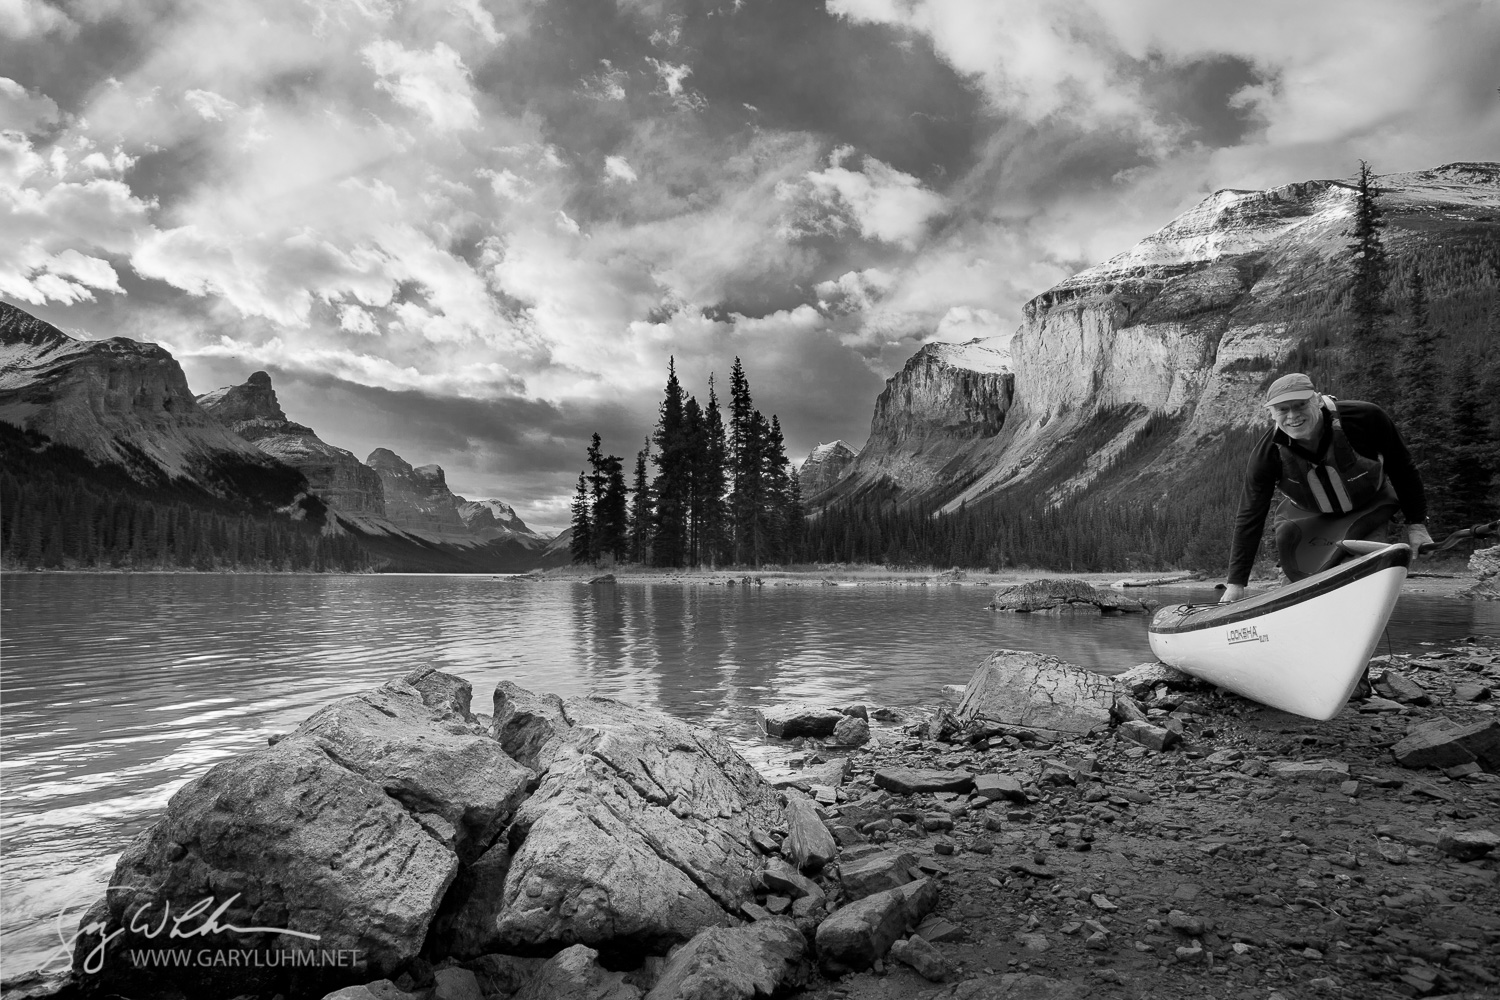 A male sea kayaker brings a kayak ashore at Spirit Island, Maligne Lake, Jasper National Park.